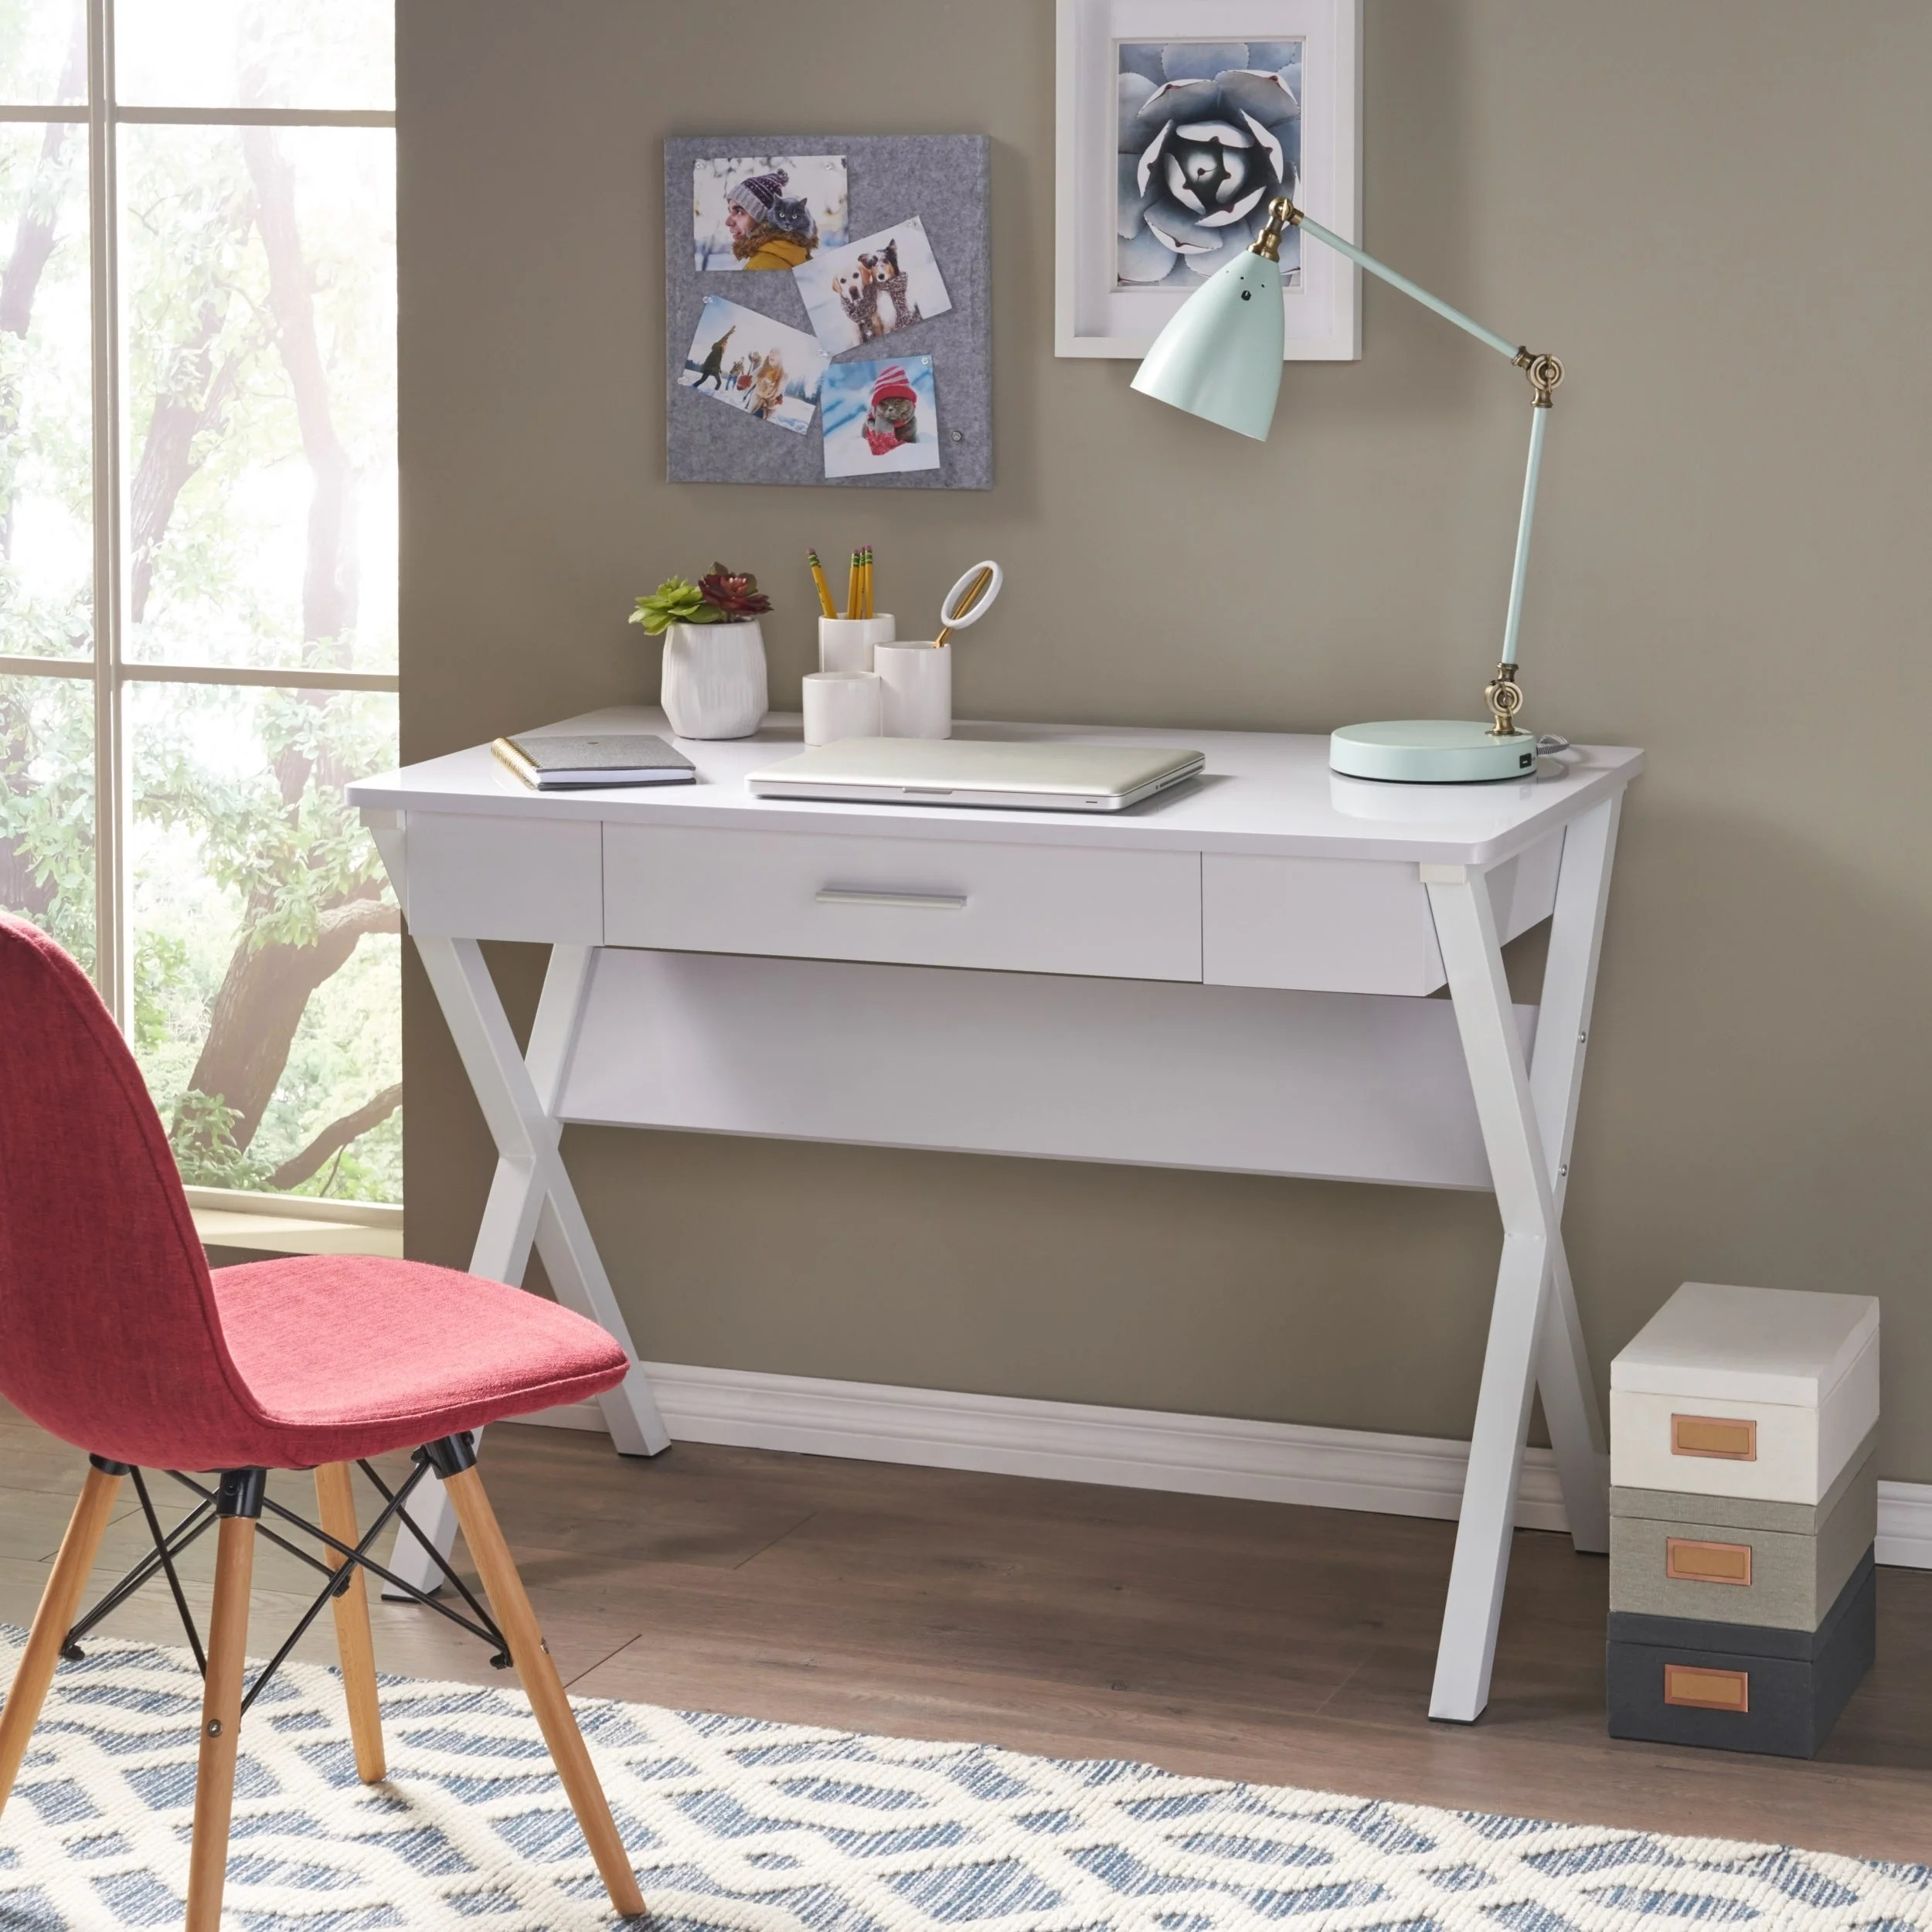 Kids Table And Chairs Clearance Buy Kids Desks Study Tables Online At Overstock Our Best Kids